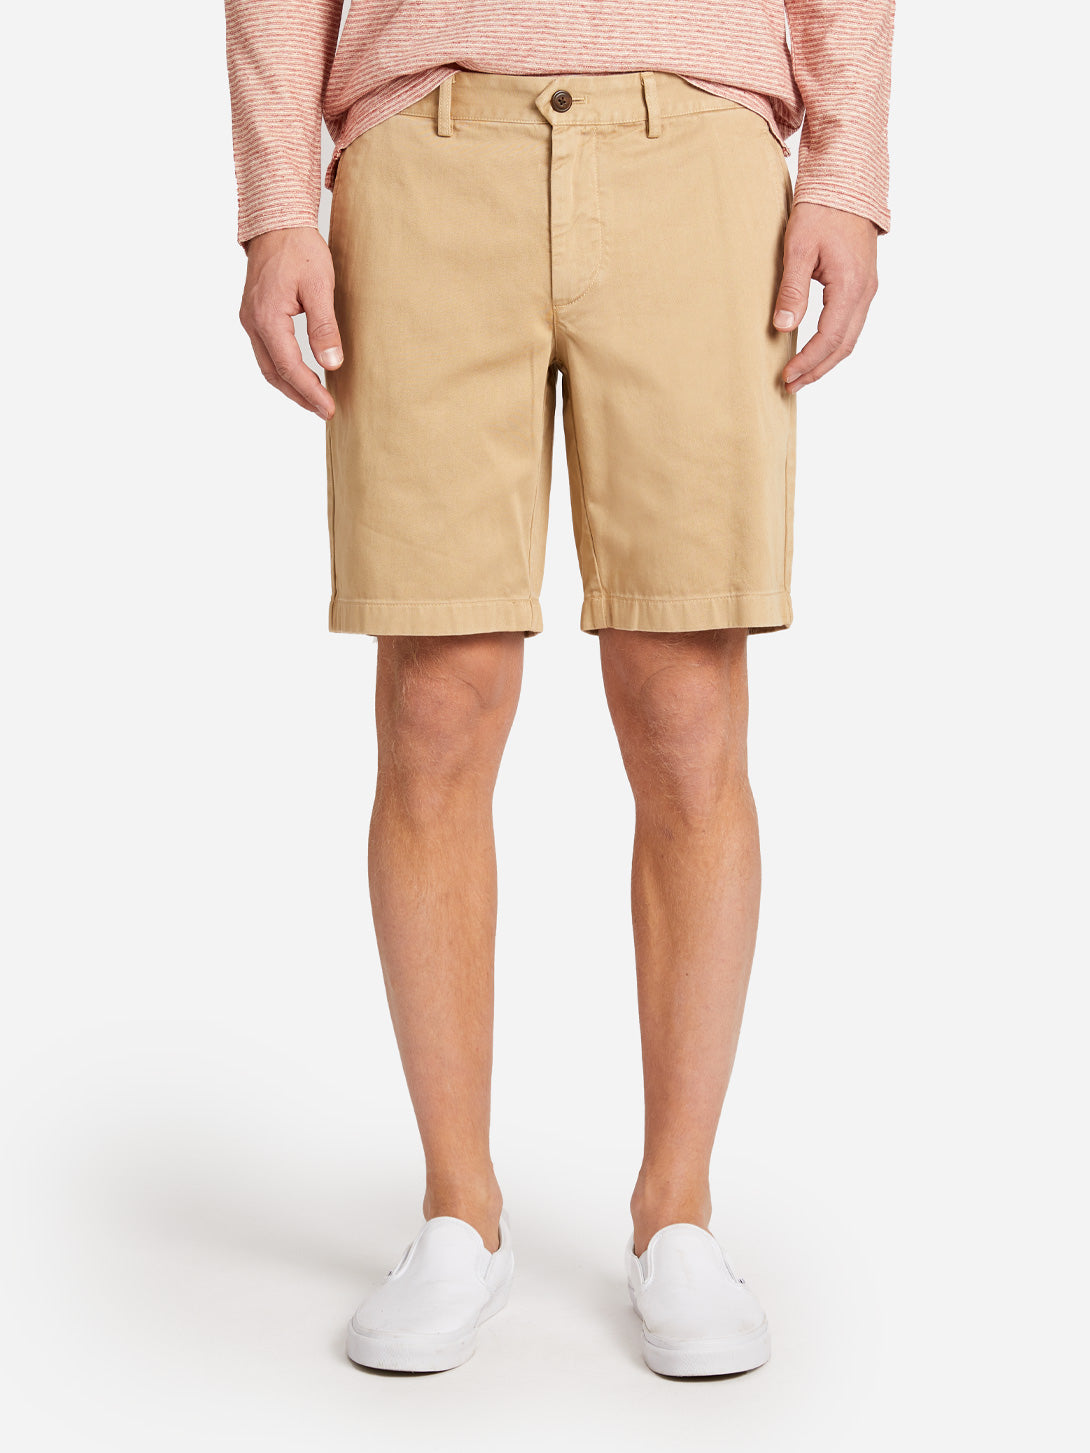 TWILL MODERN SHORT CAMEL ONS CLOTHING